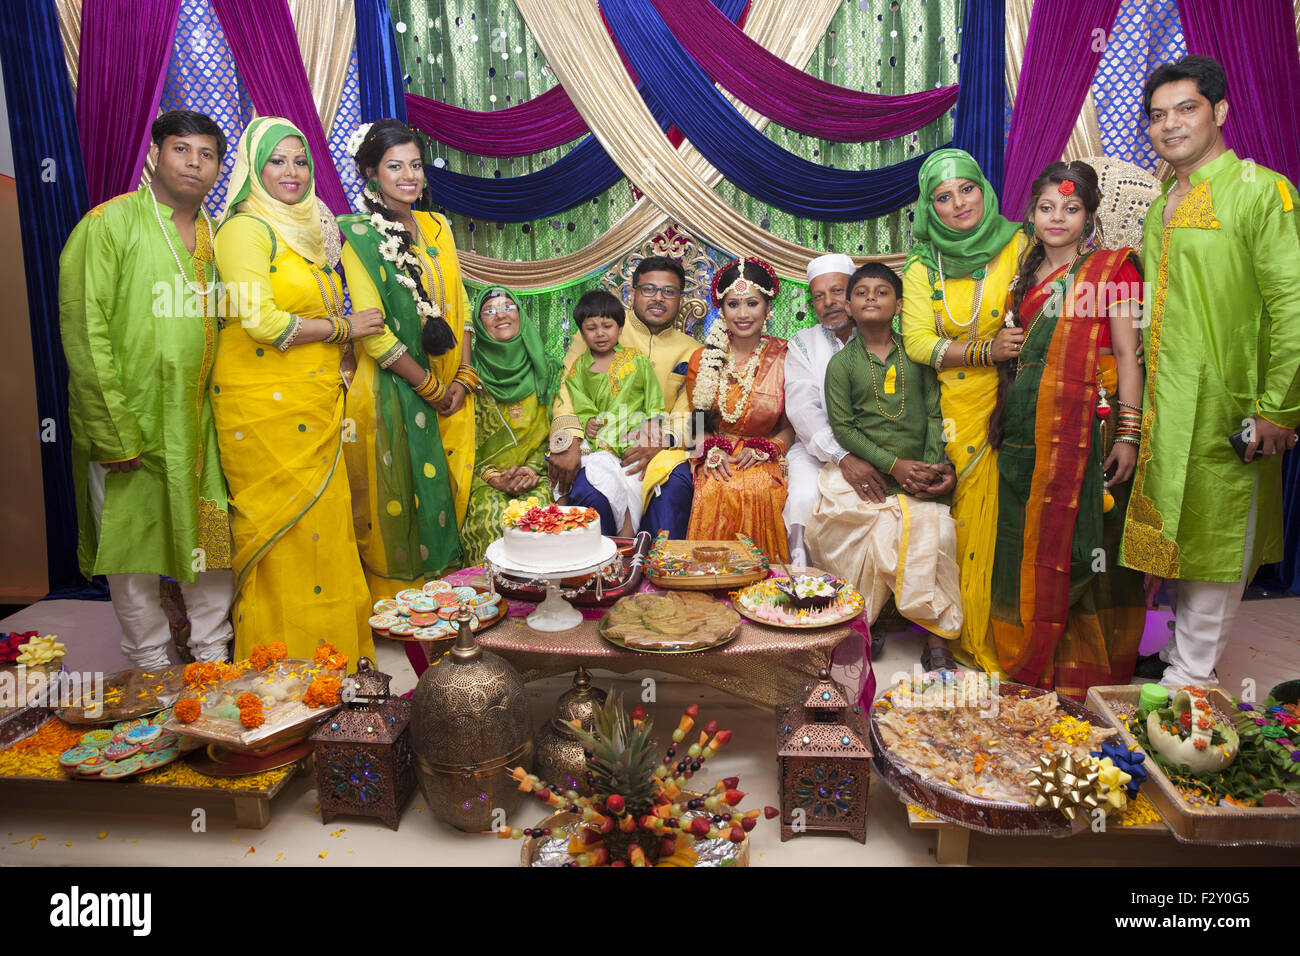 Bangladeshi bride and groom (center) with the groom's family at their wedding reception in Brooklyn,NY - Stock Image